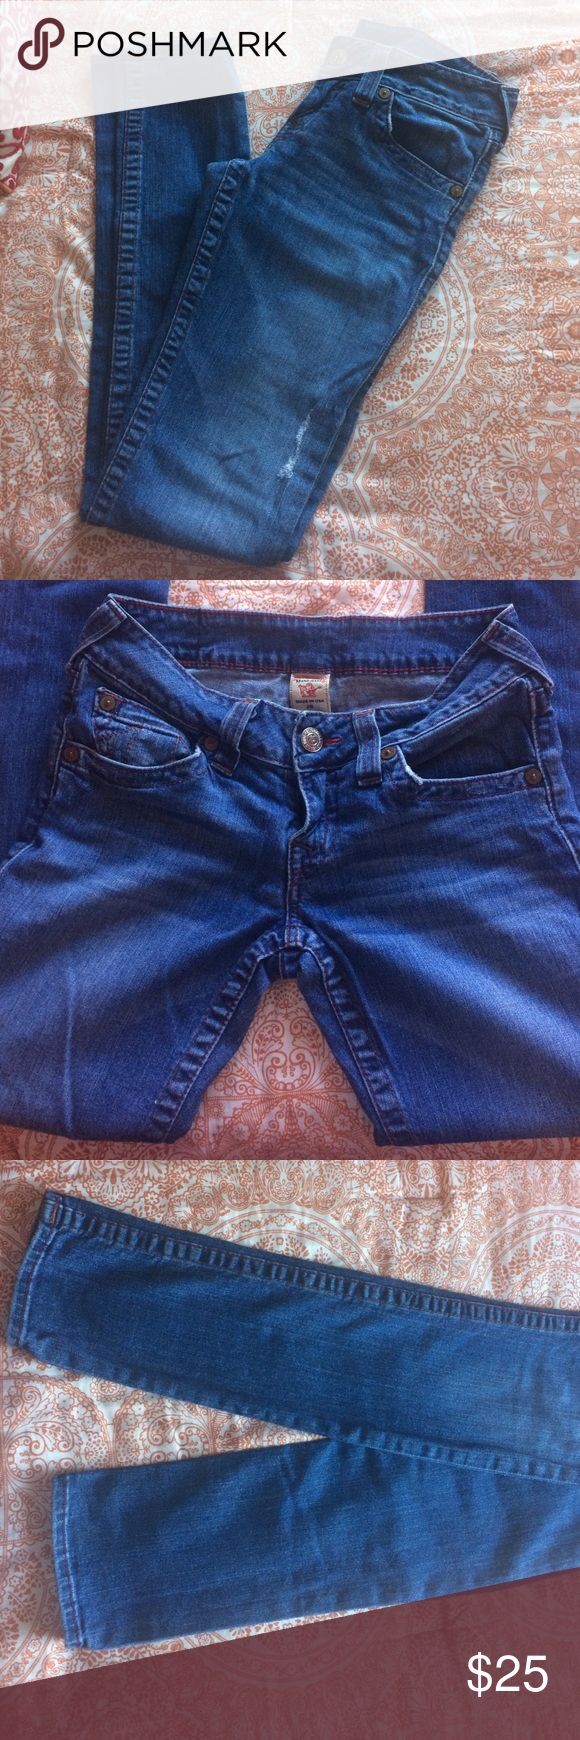 True Religion Jeans! Like new! Only worn twice! Size 28! Straight leg/skinny cut. Only selling because they are too big! True Religion Jeans Skinny